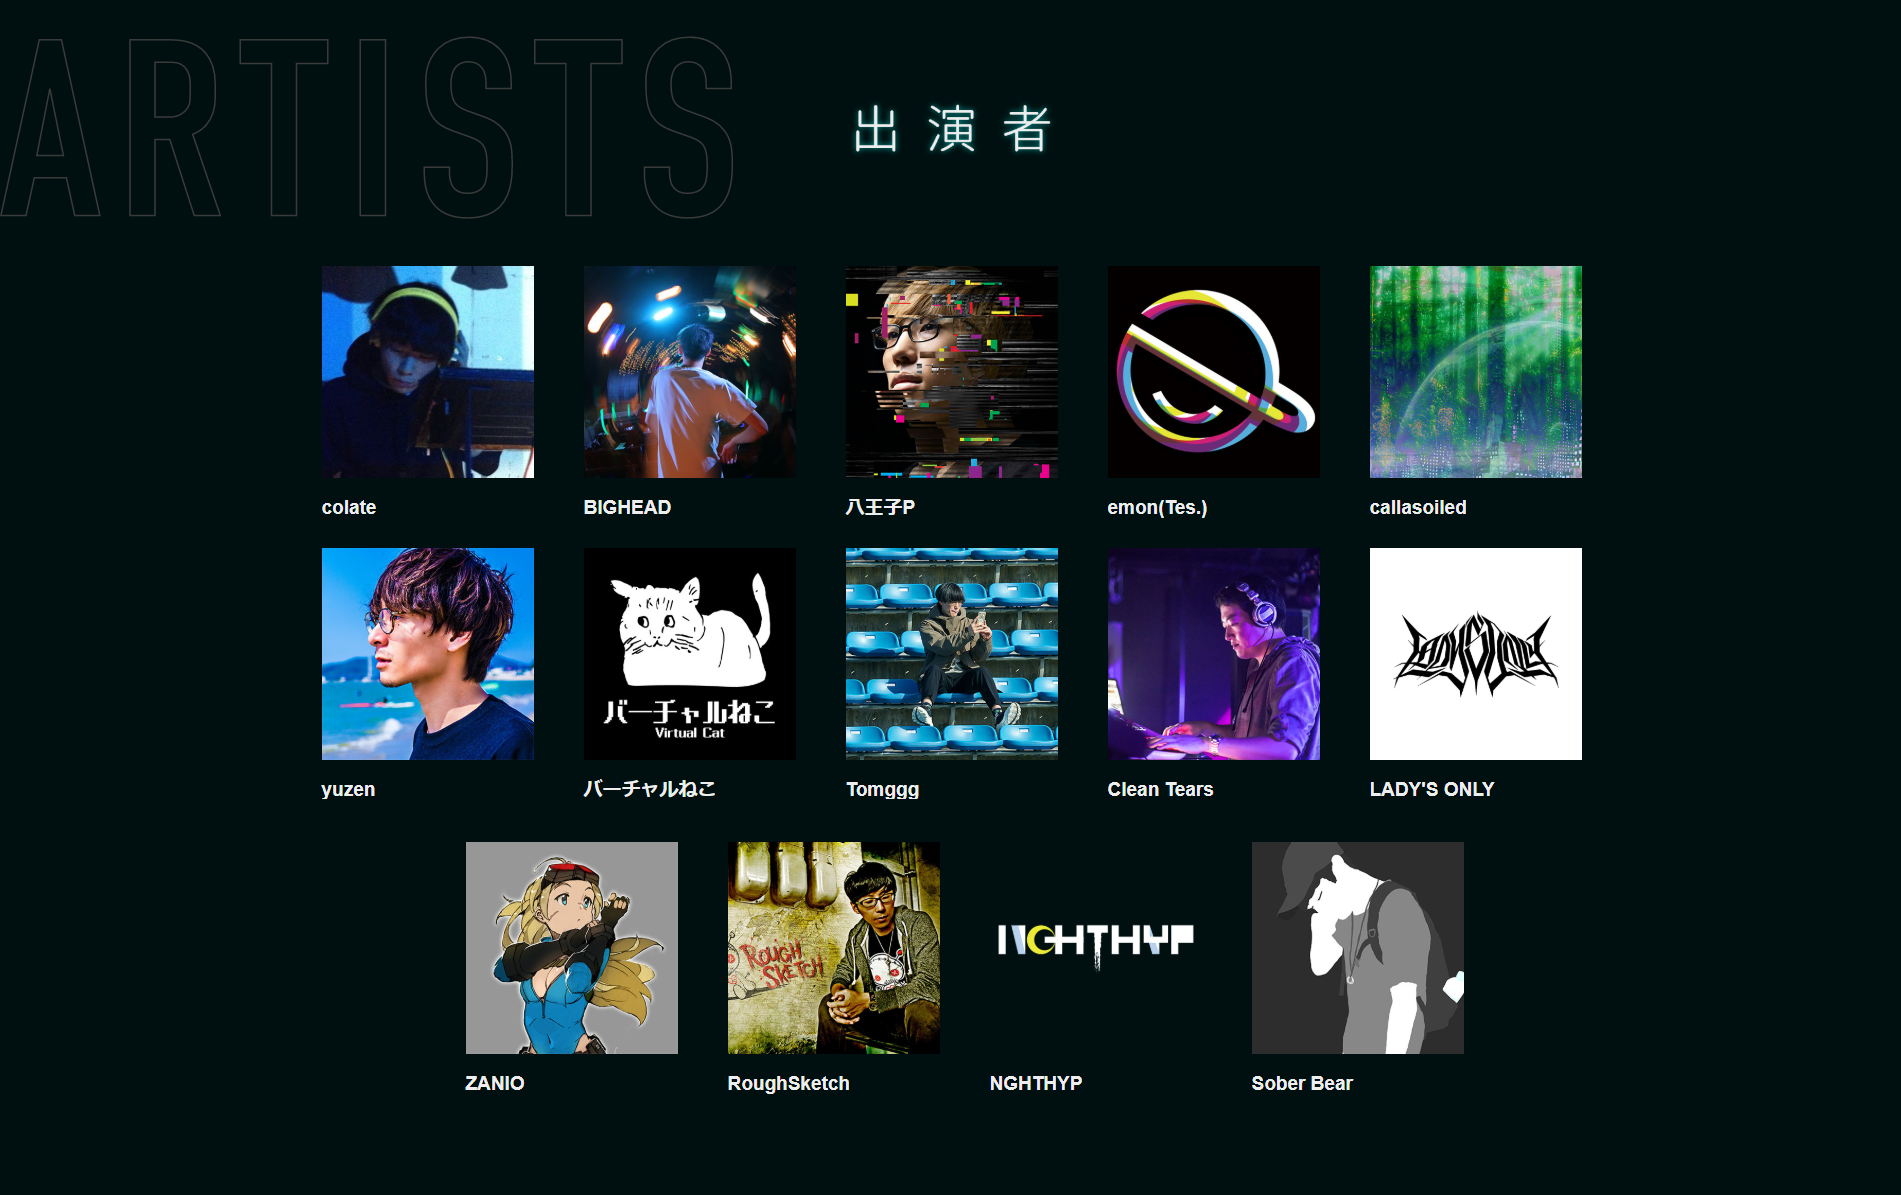 Hatsune Miku Birthday 2020 (2) - Digital Stars 2020 artist line-up